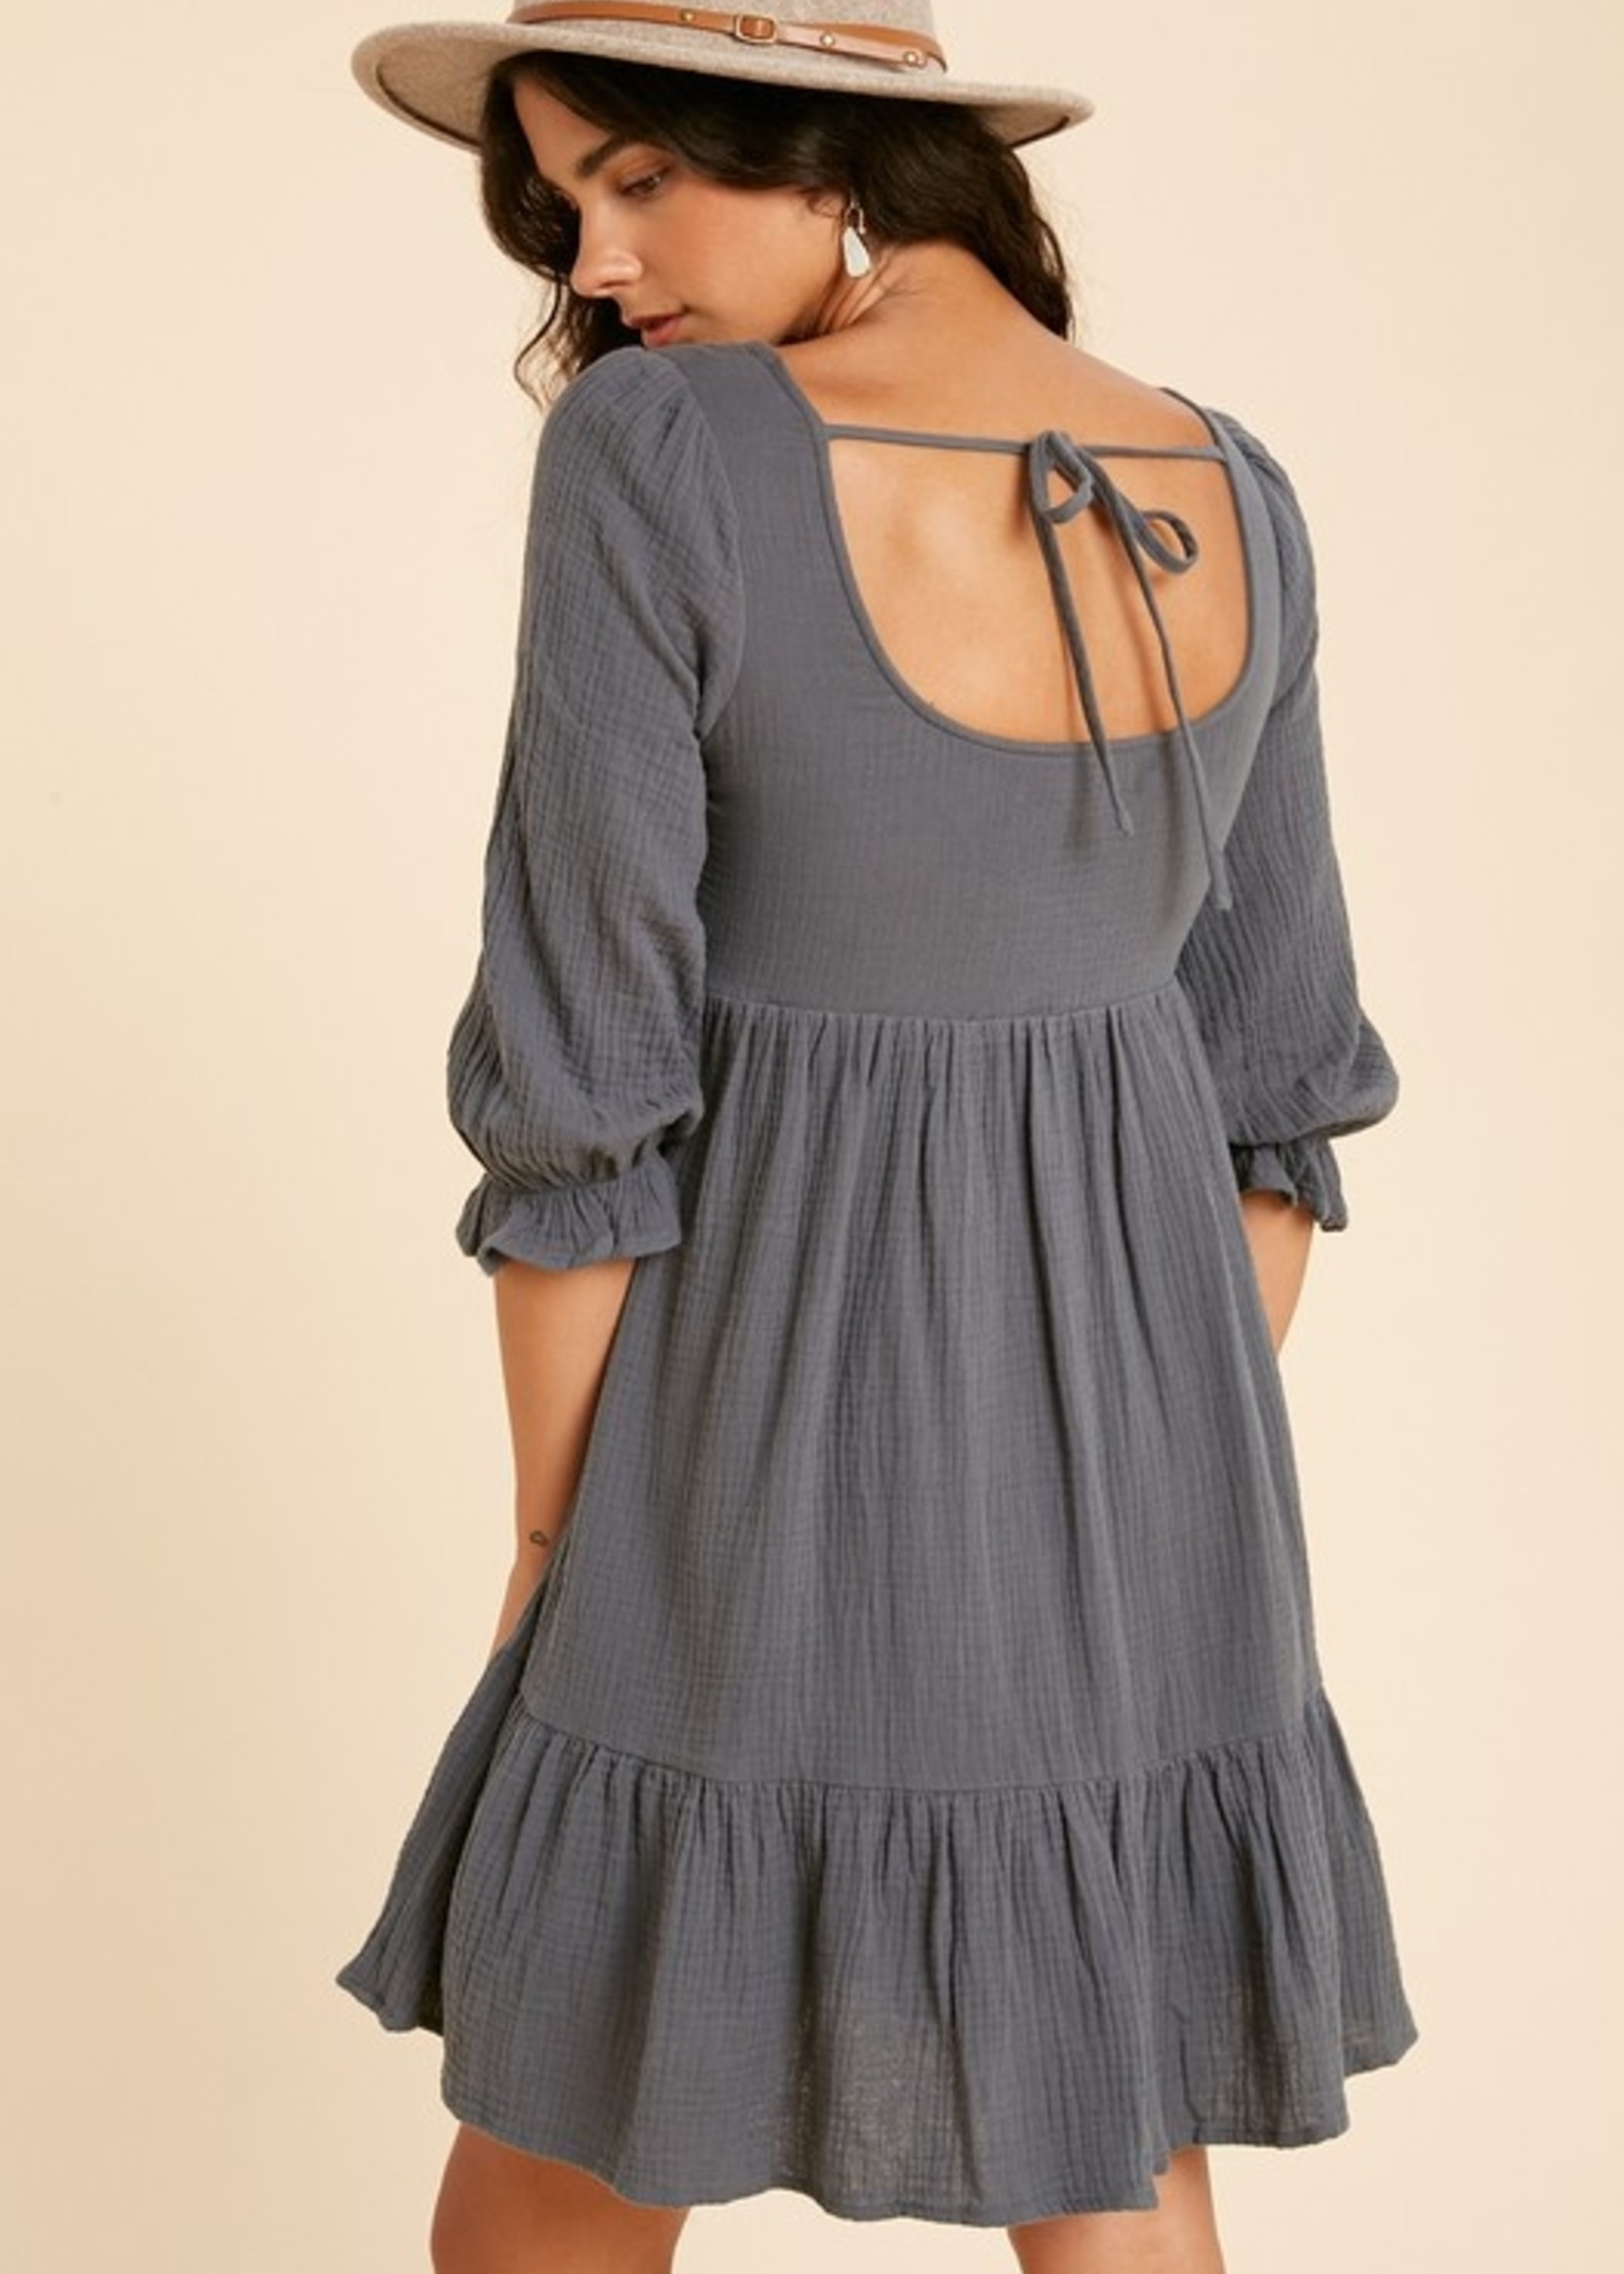 Guaze Henley Dress - Charcoal Teal